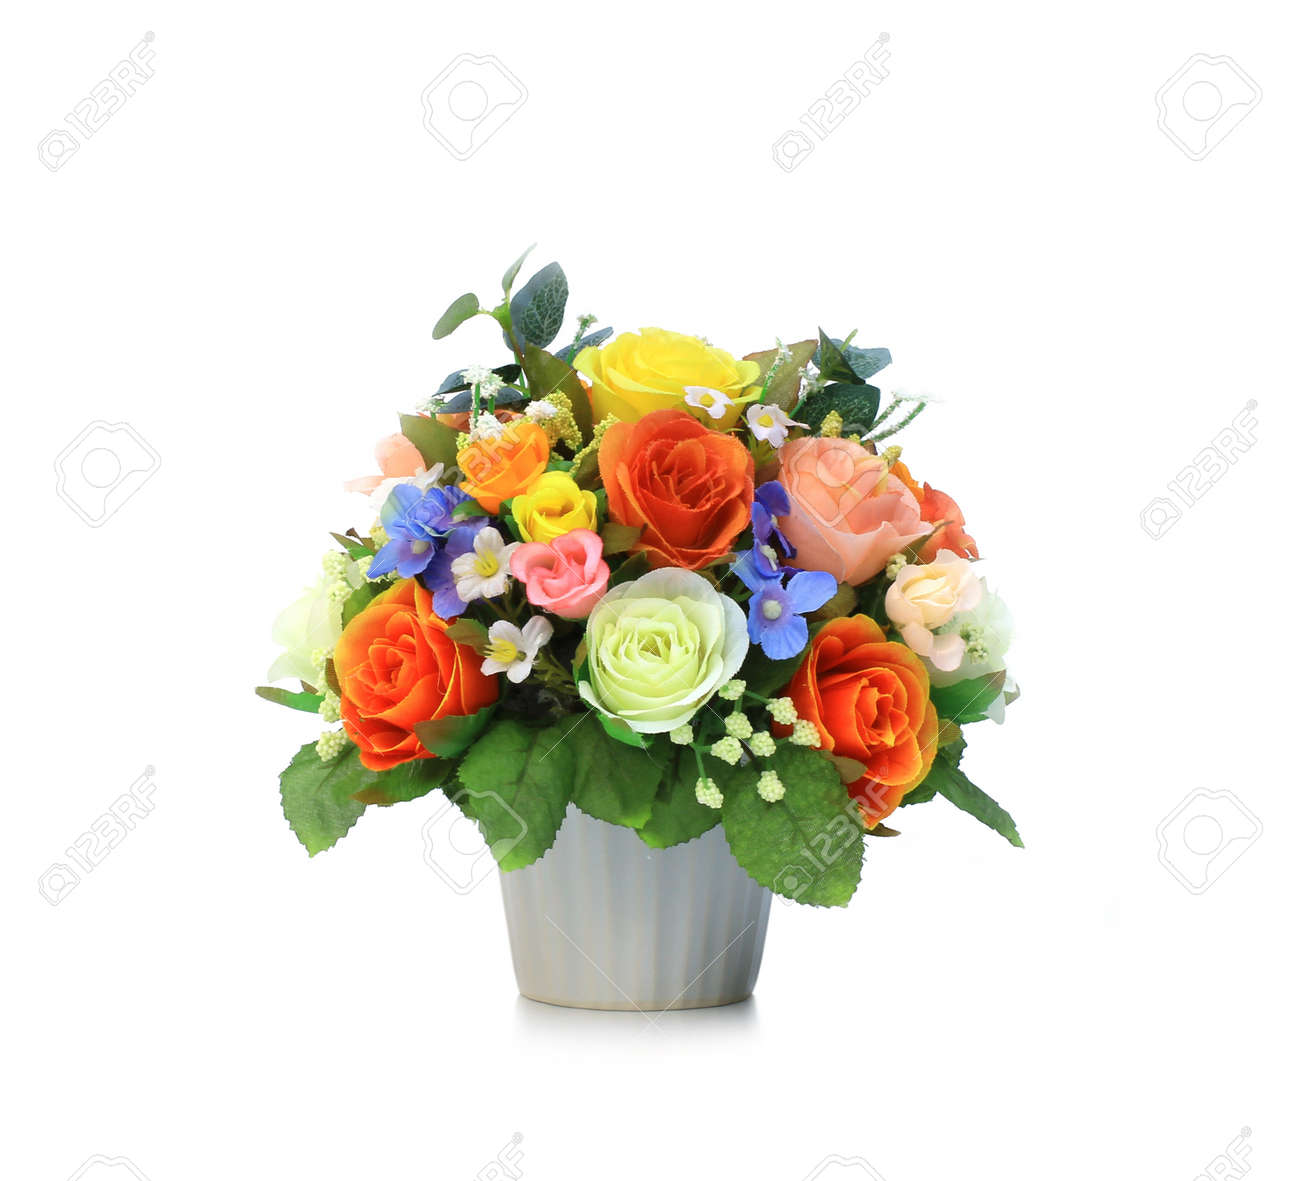 Colorful Artificial Flower Arrangement On White Background Stock